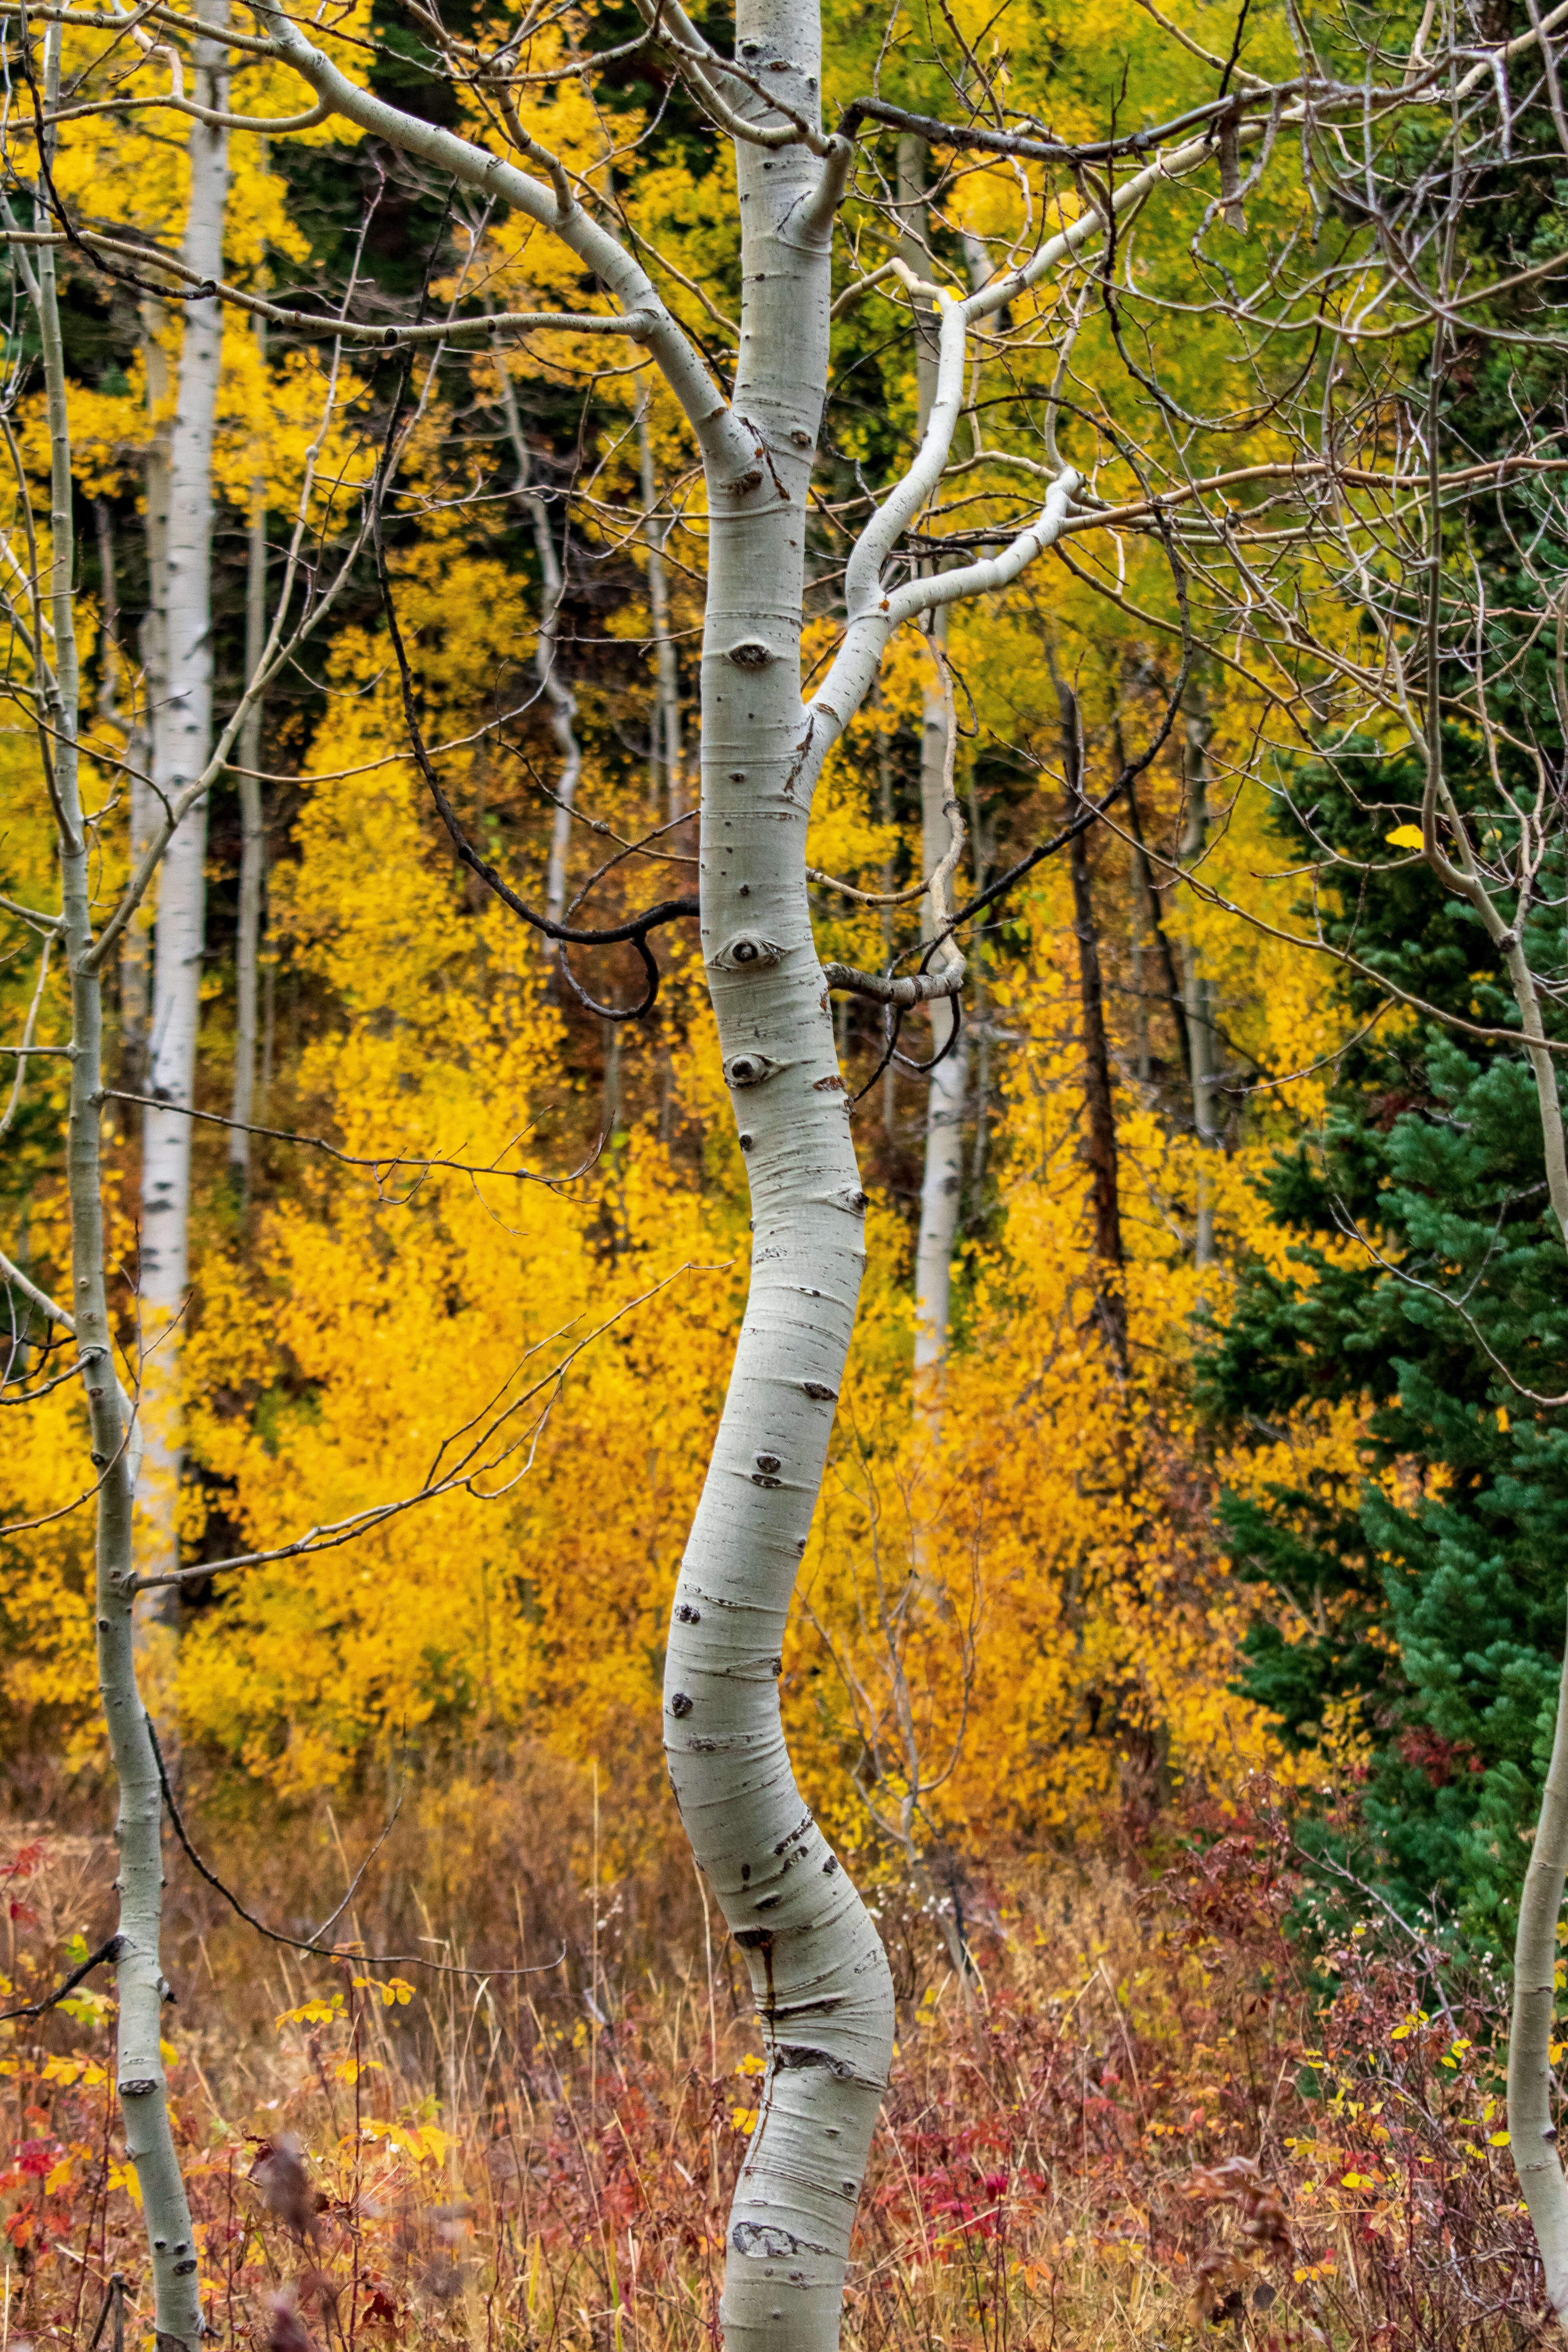 Bent Aspen tree with yellow leaves